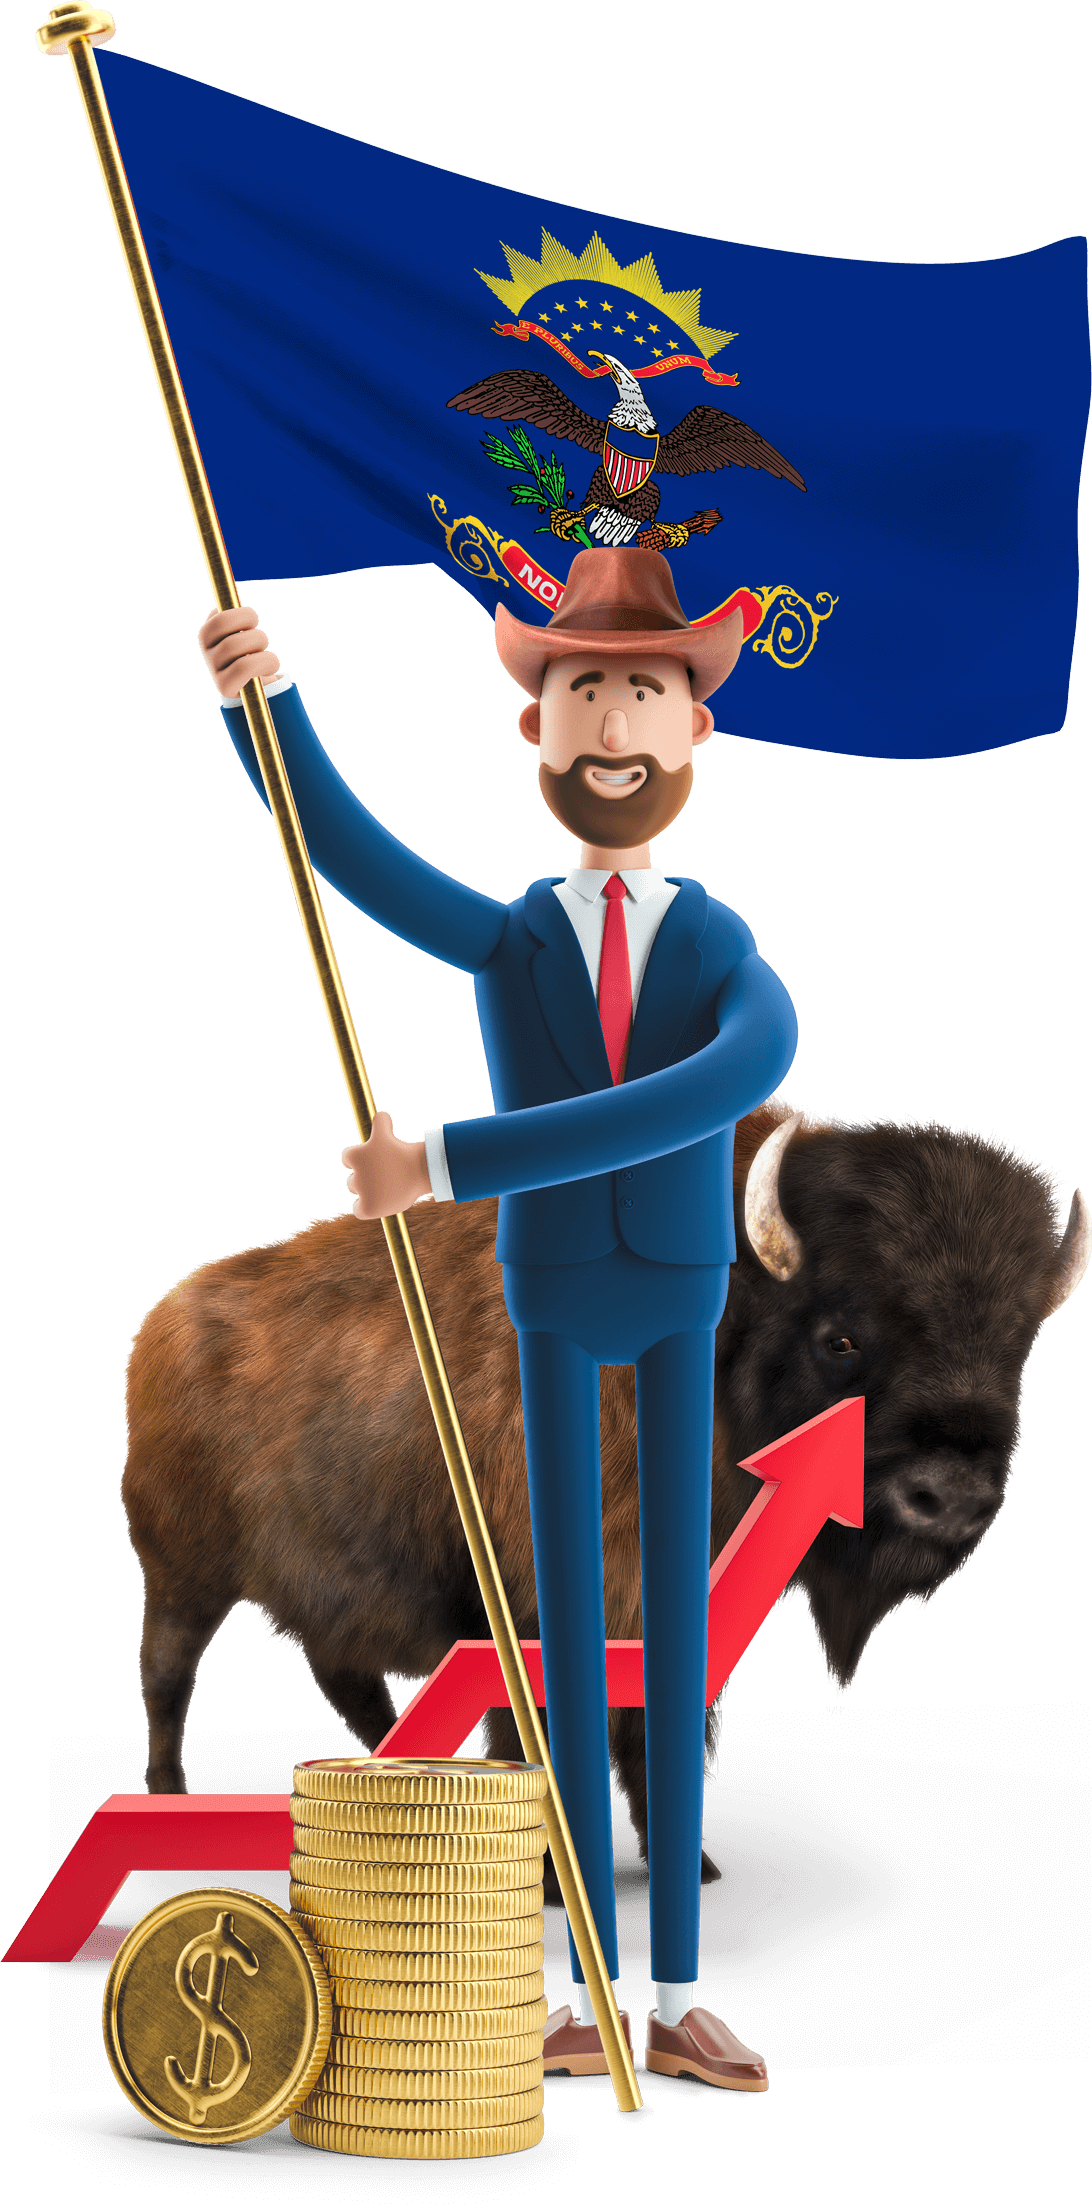 North Dakota flag held by MetCredit USA businessman who's wearing a hat and a bison is standing in the background